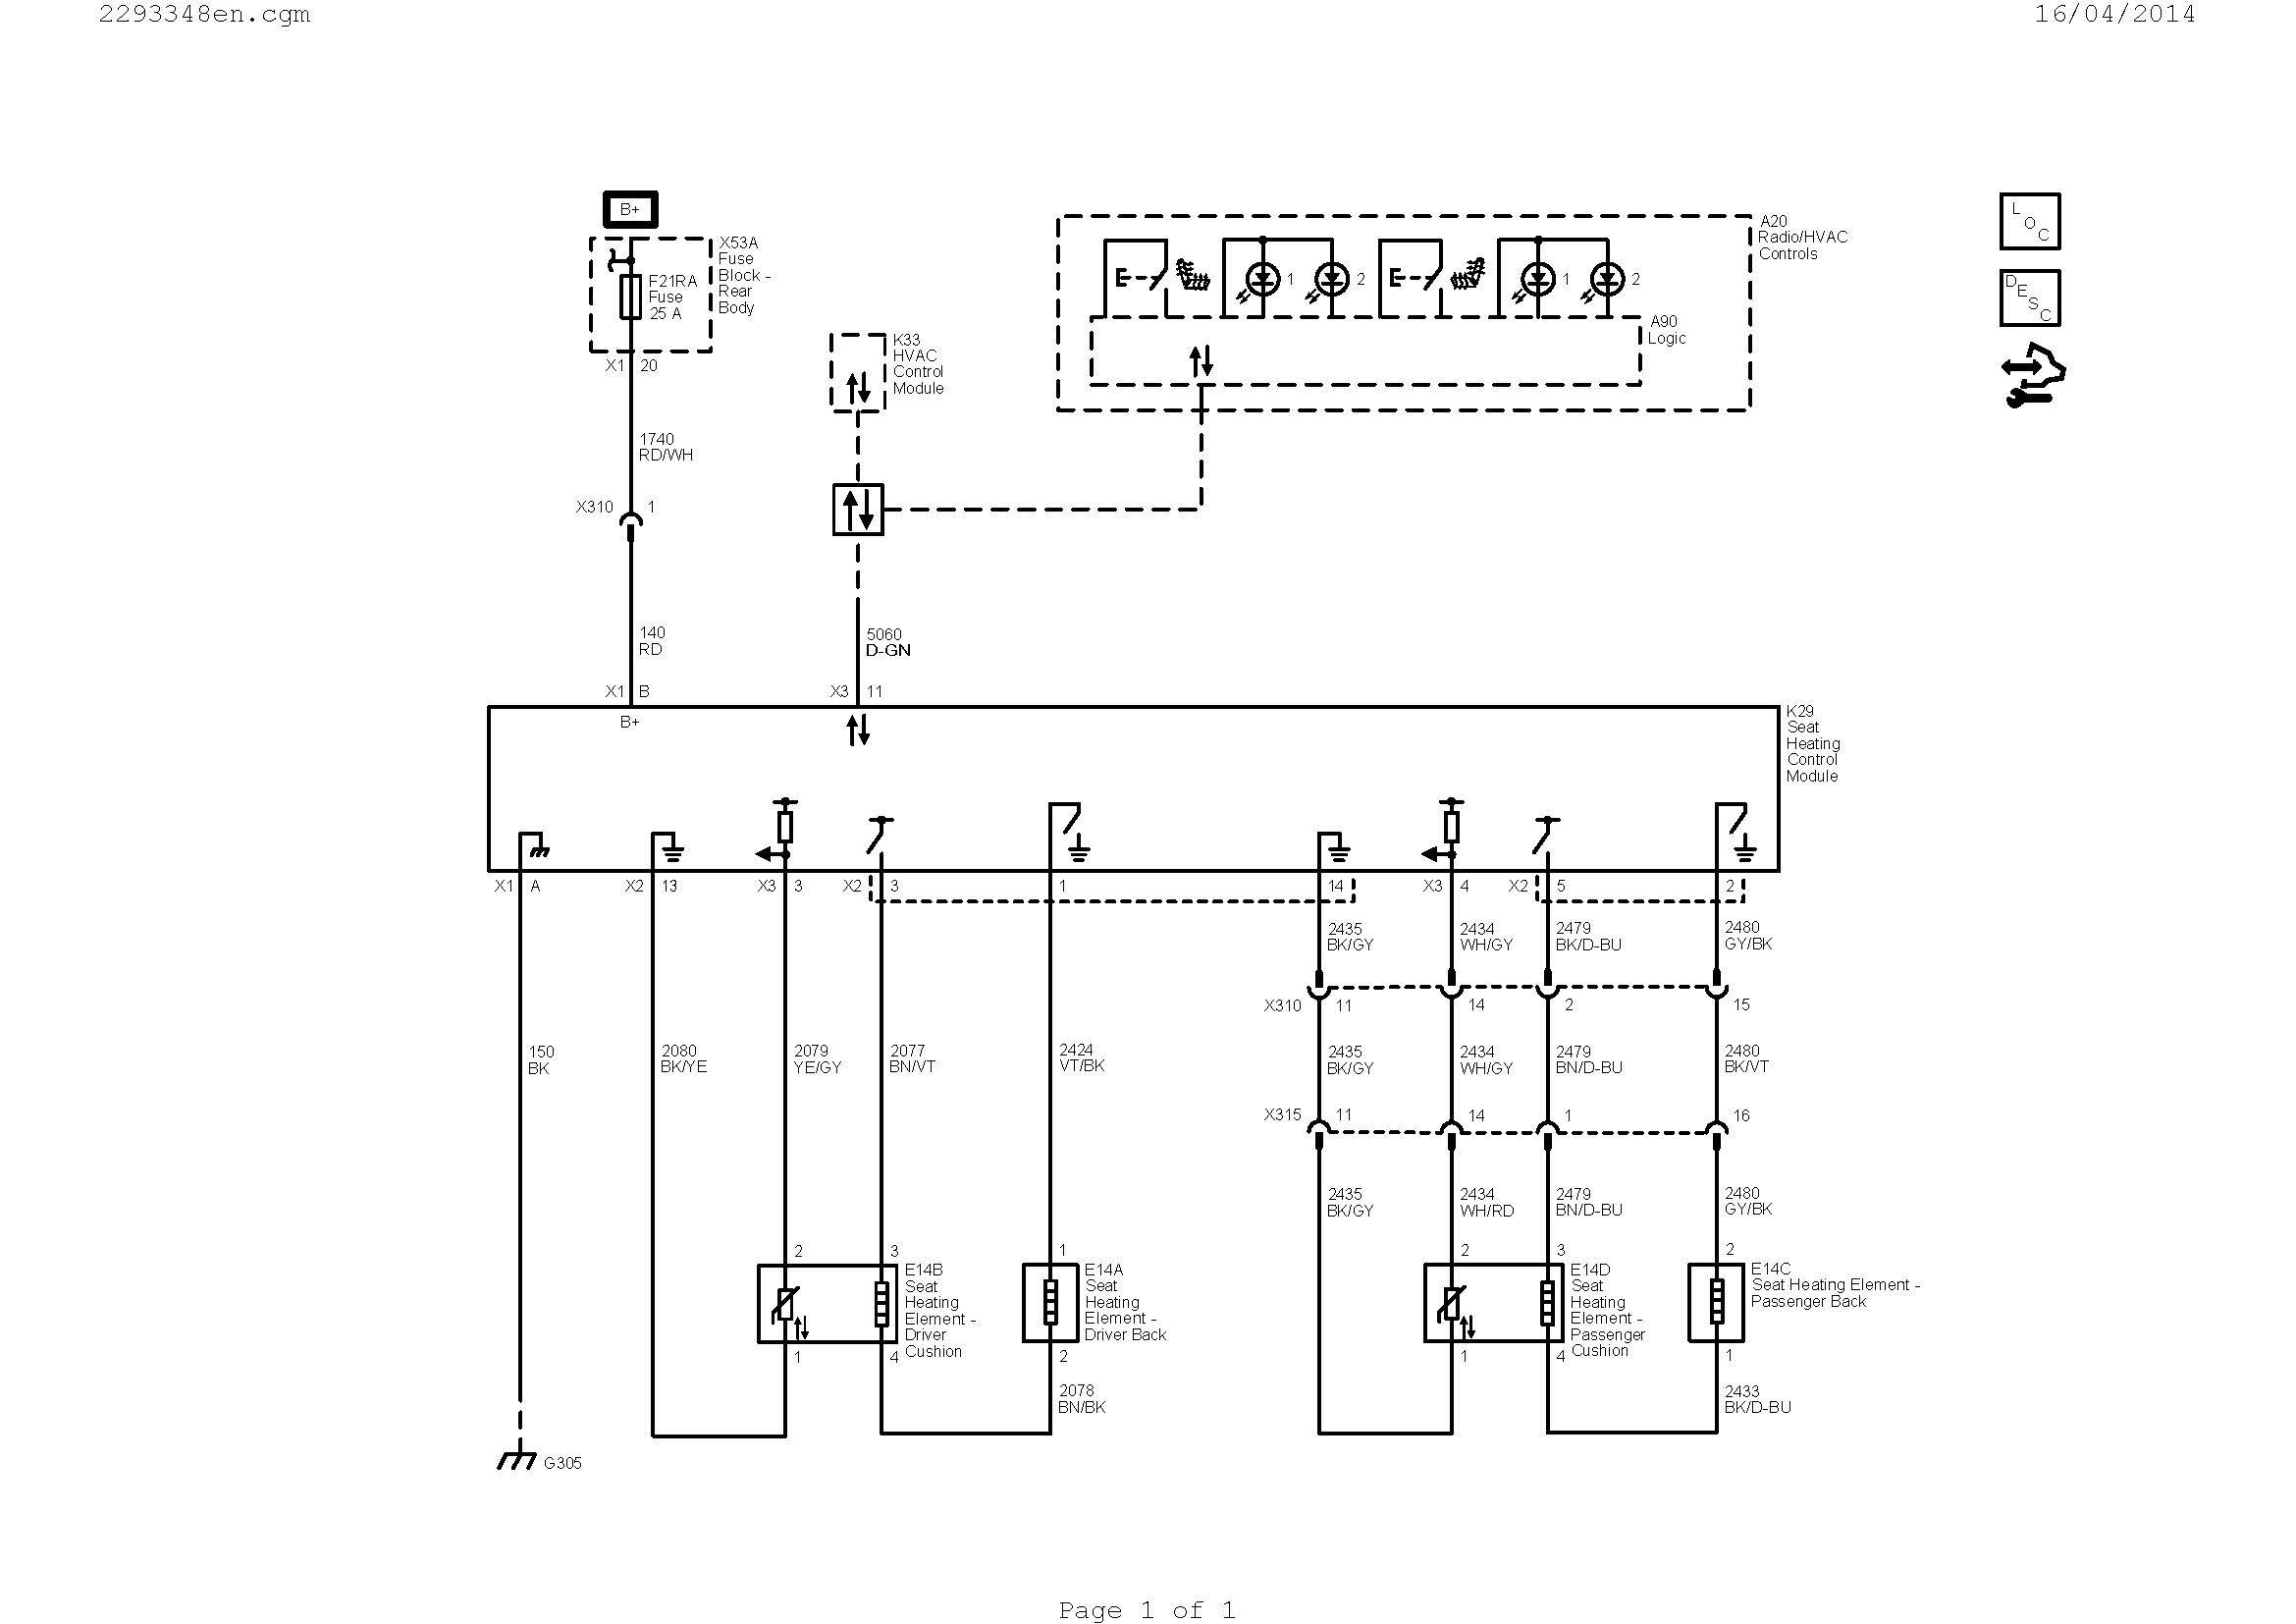 lvdt wiring diagram Download-Wiring A Ac thermostat Diagram New Wiring Diagram Ac Valid Hvac Old Fashioned Hvac Transformer 2-q